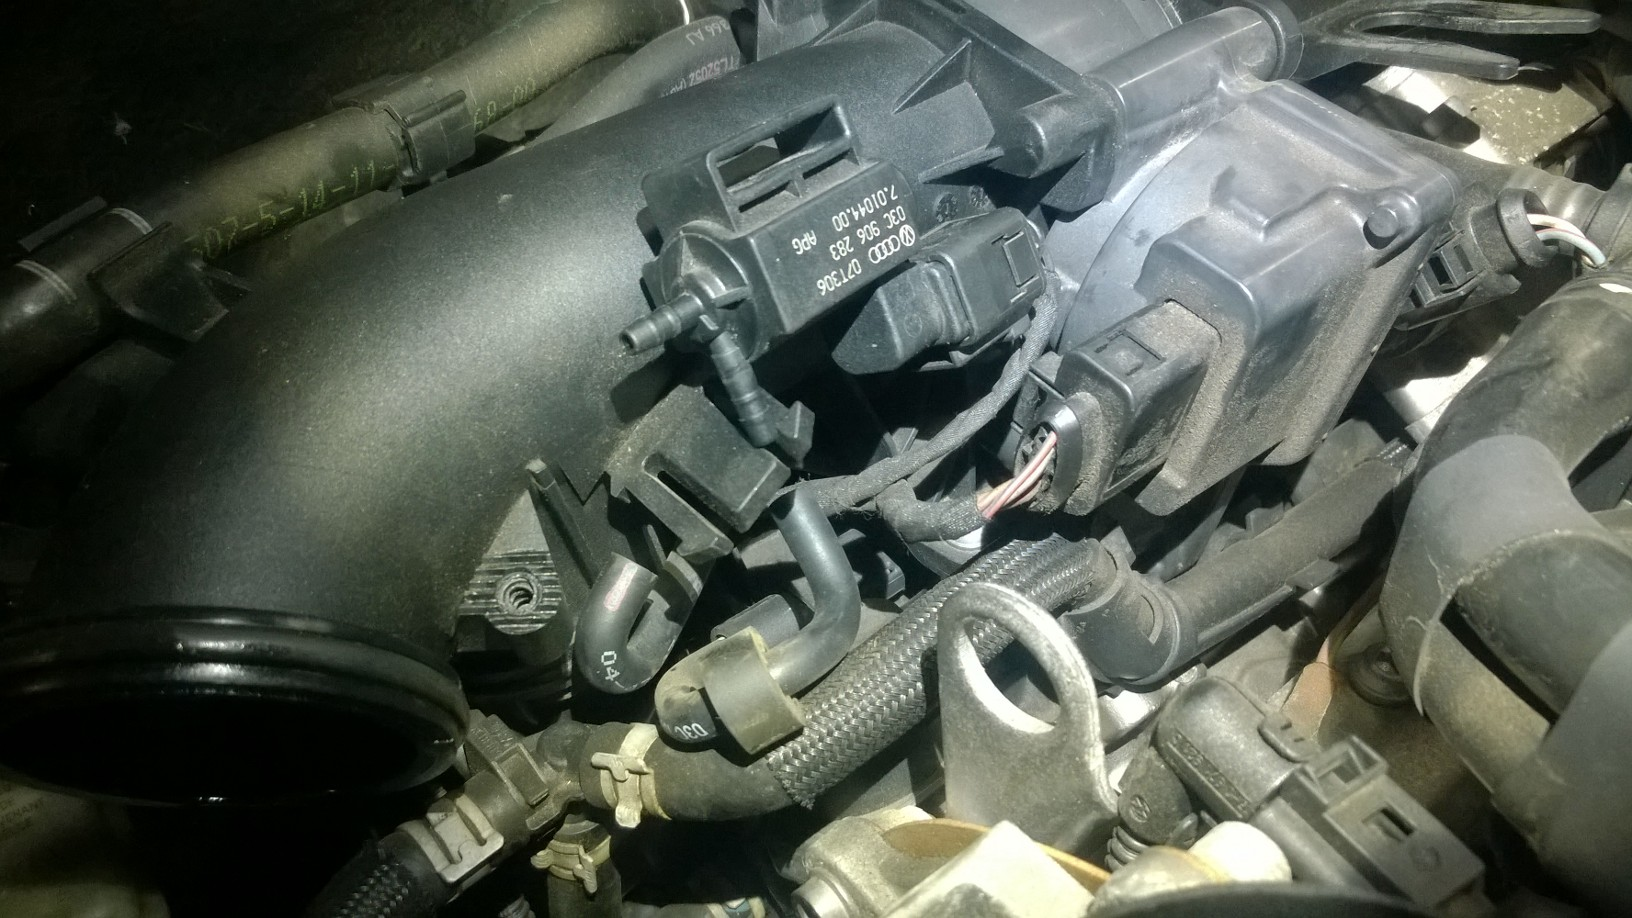 2008 VW golf intake flap VSV solenoid